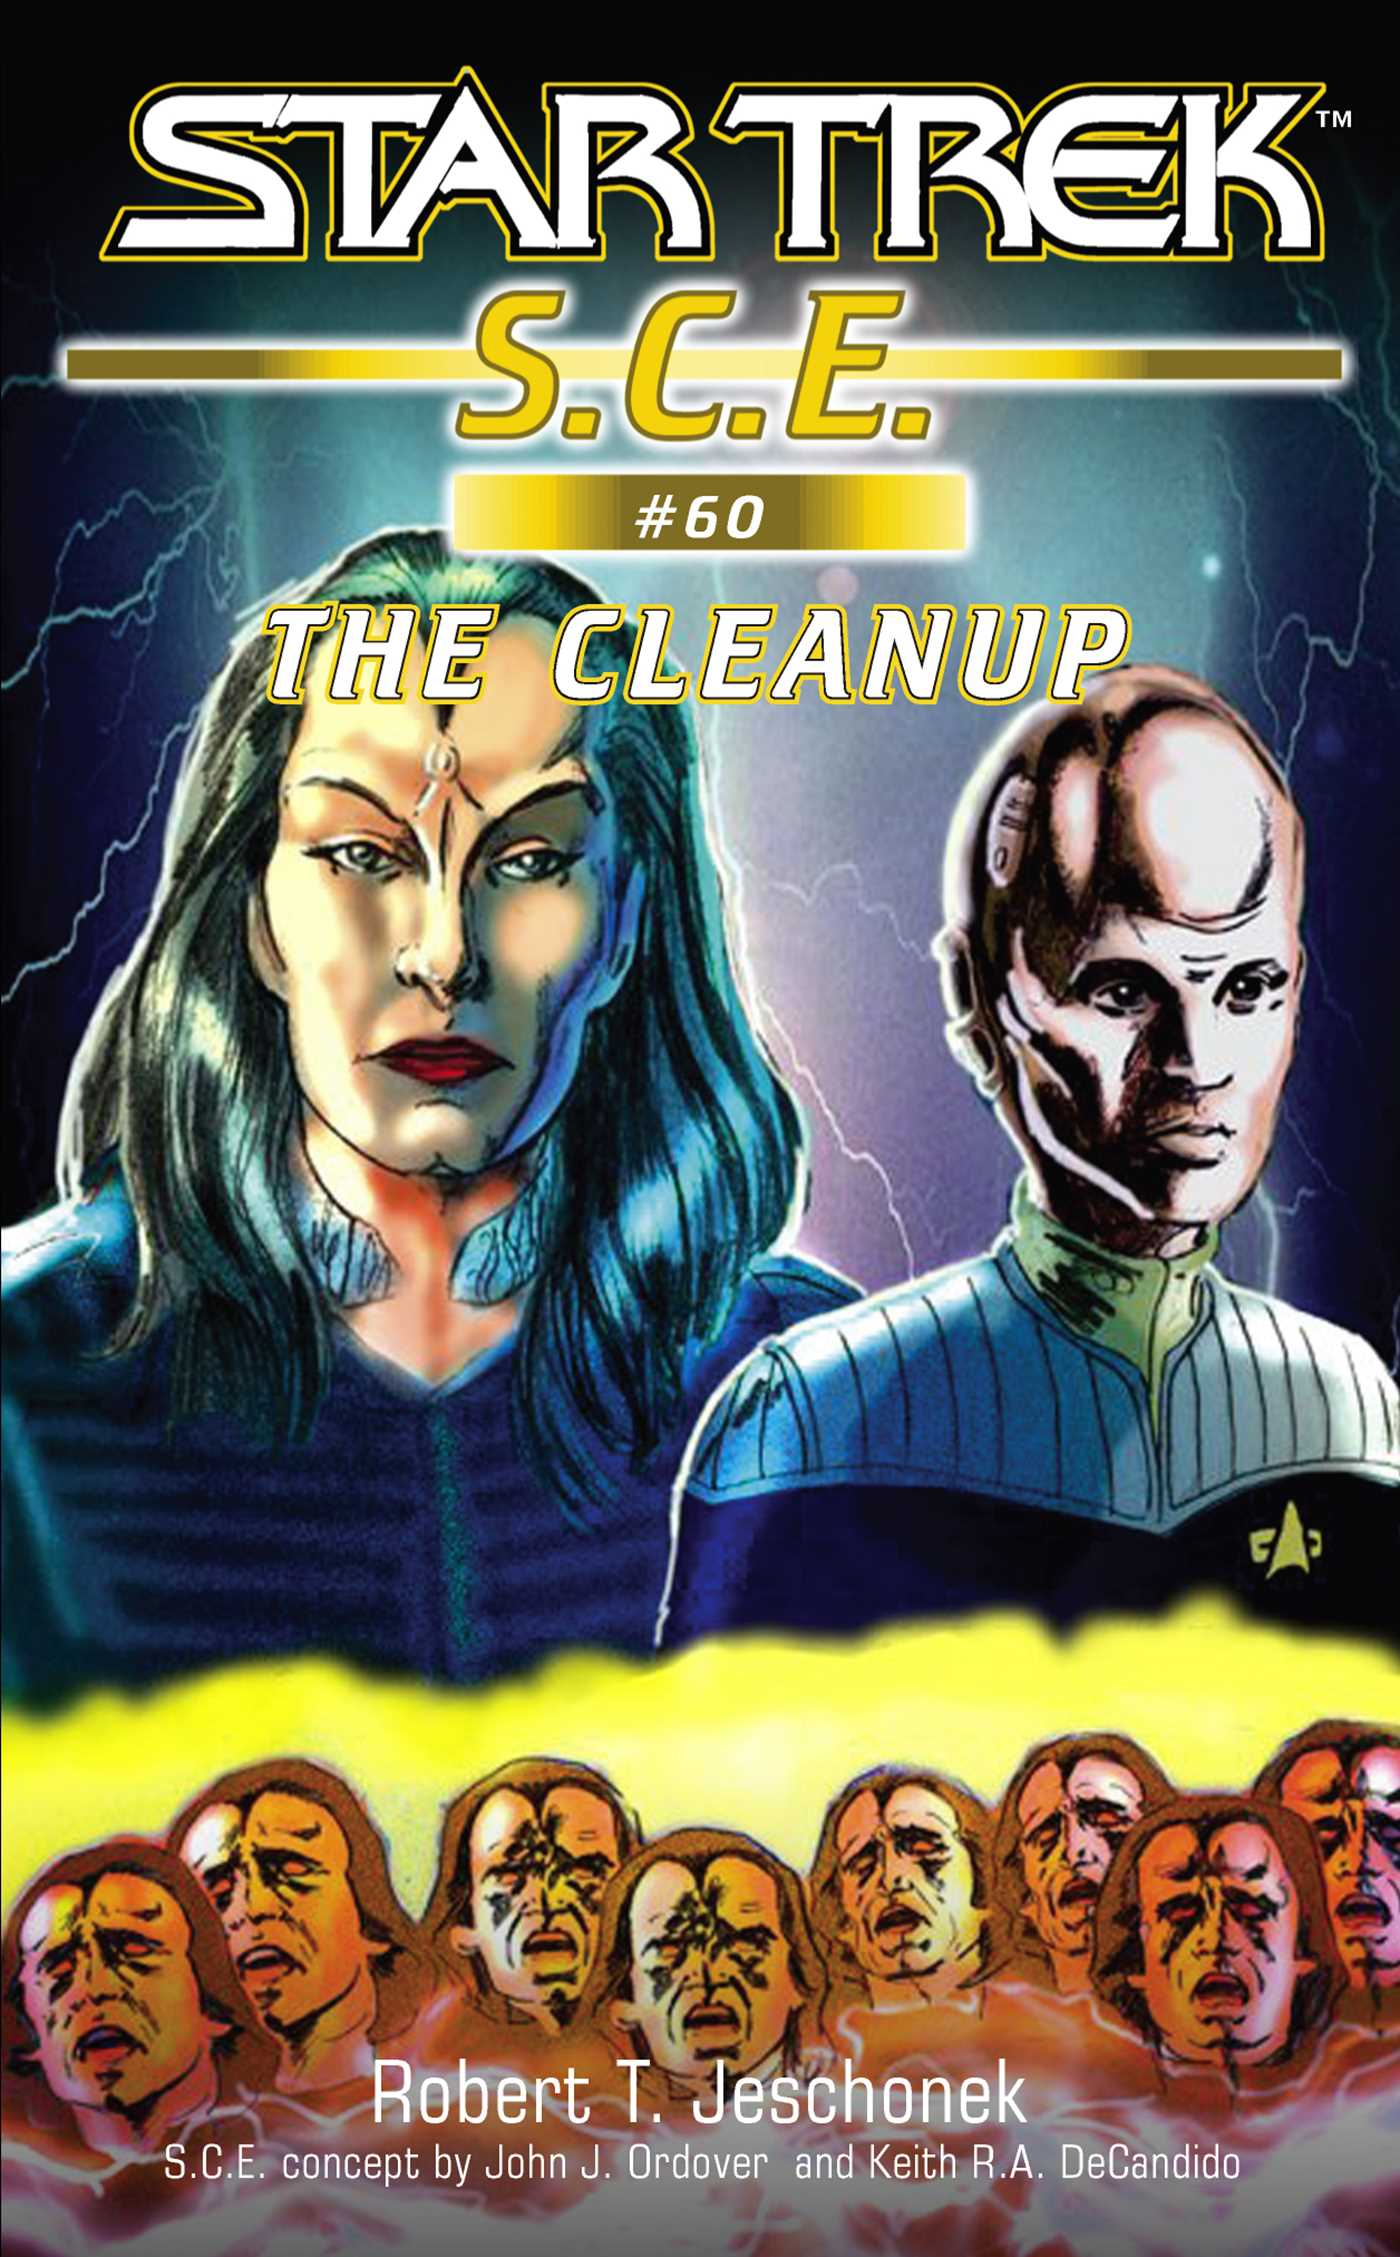 Star-trek-the-cleanup-9781416520443_hr